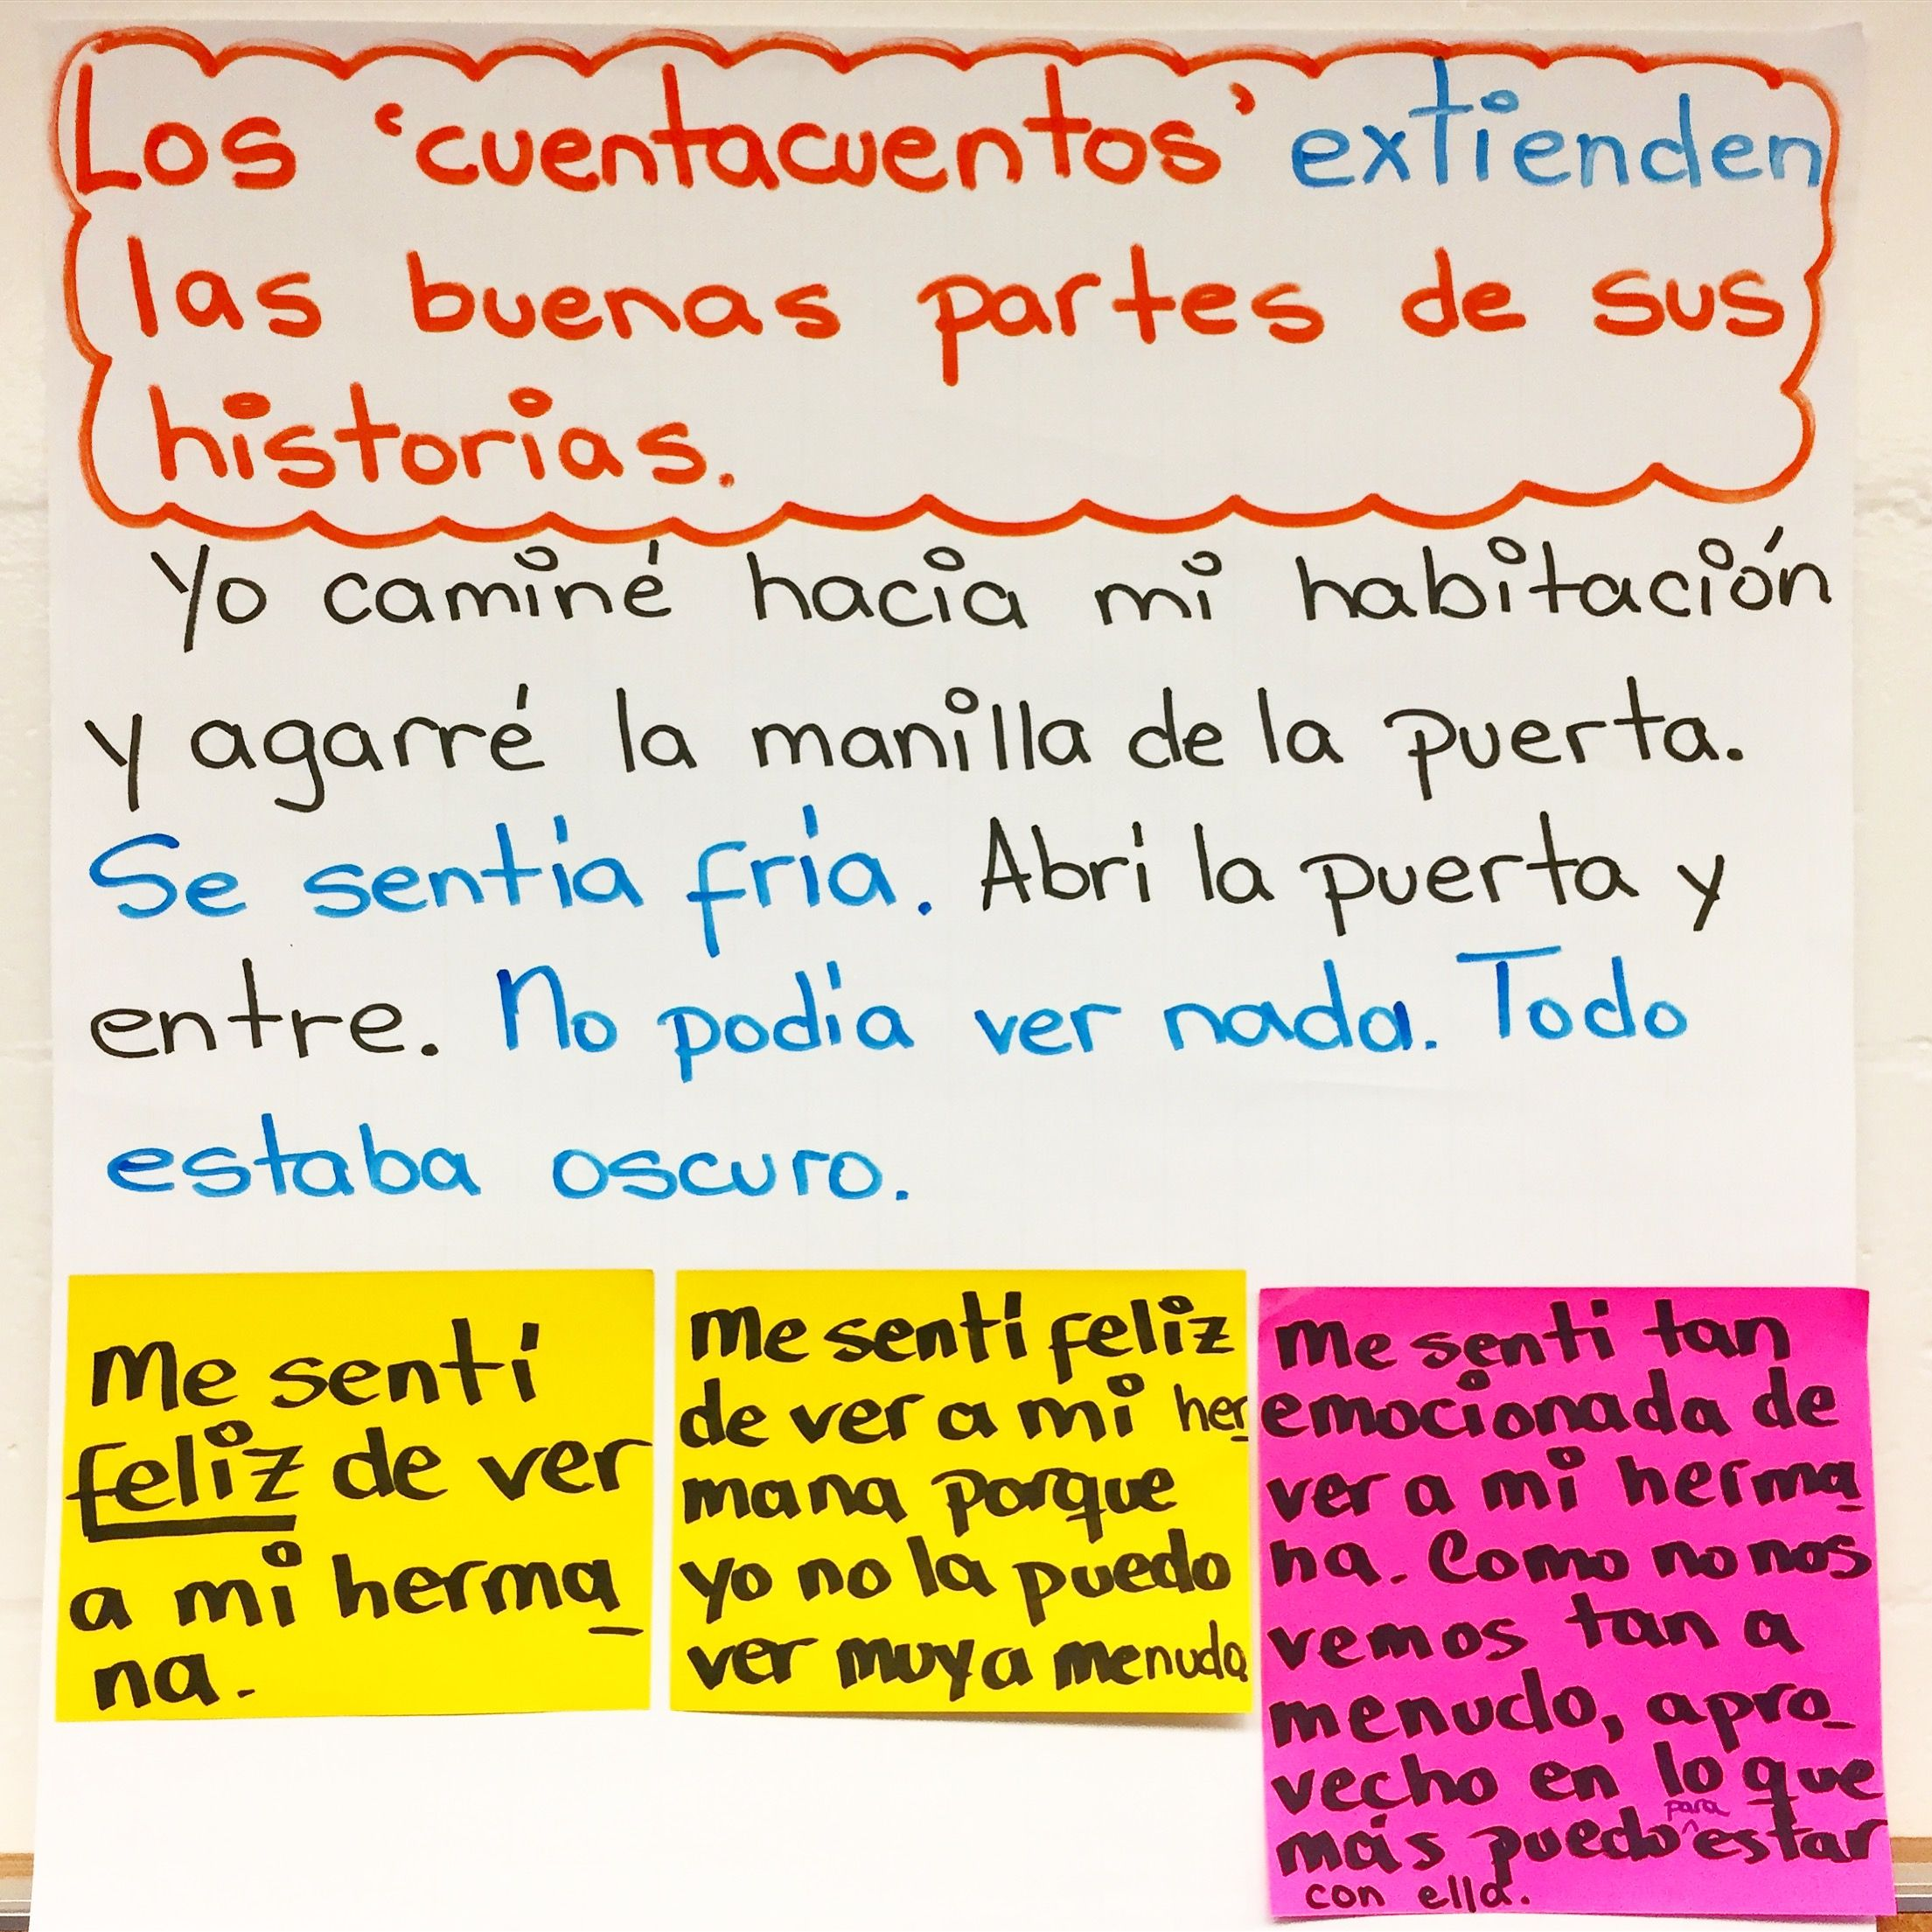 Extending the heart of our stories/Extendiendo los corazones de nuestras historias o cuentos. (entre is missing the accent in this pic - should be entré).